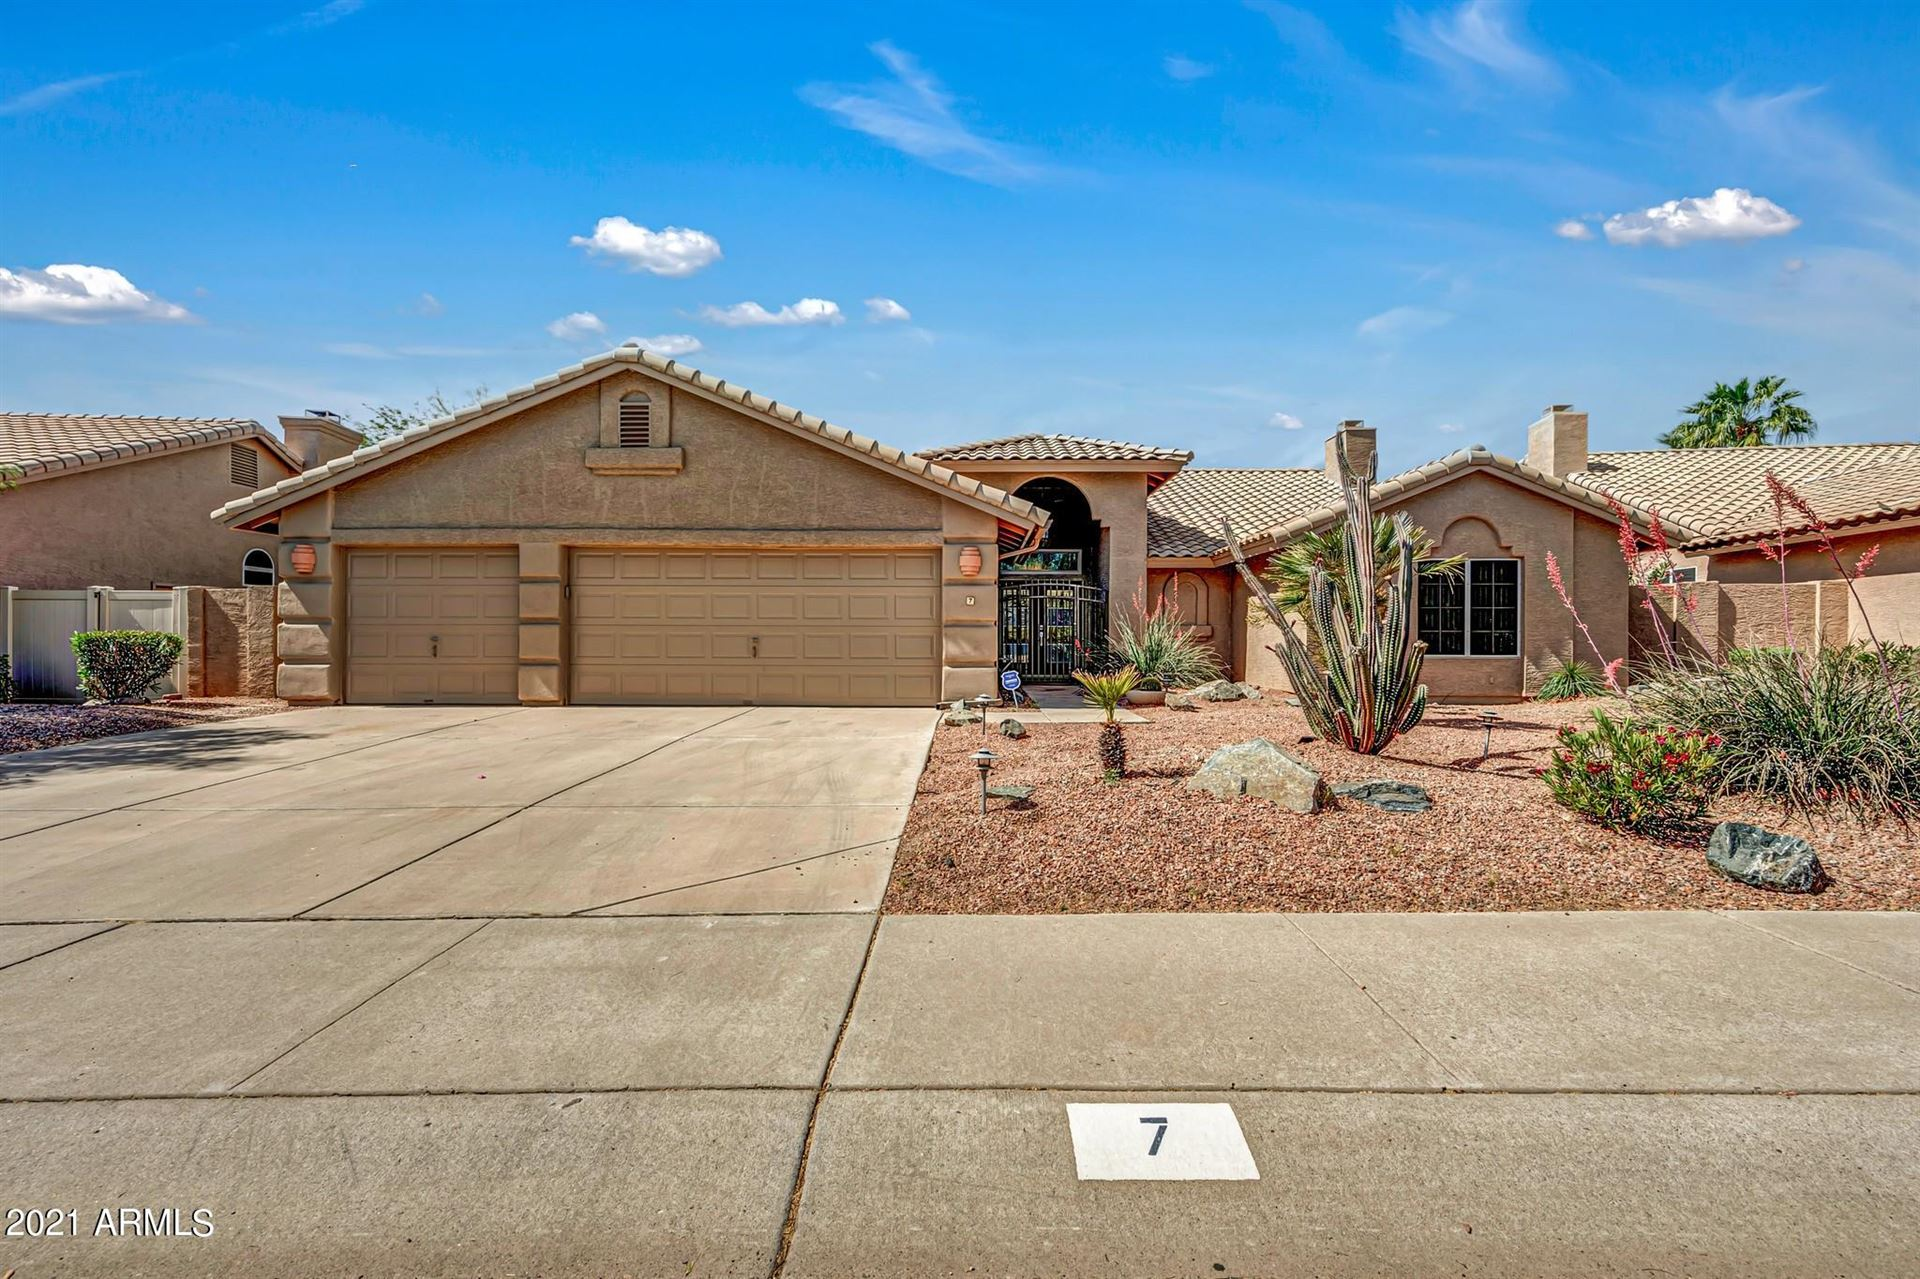 7 E MOUNTAIN SKY Avenue, Phoenix, AZ 85048 - MLS#: 6232701